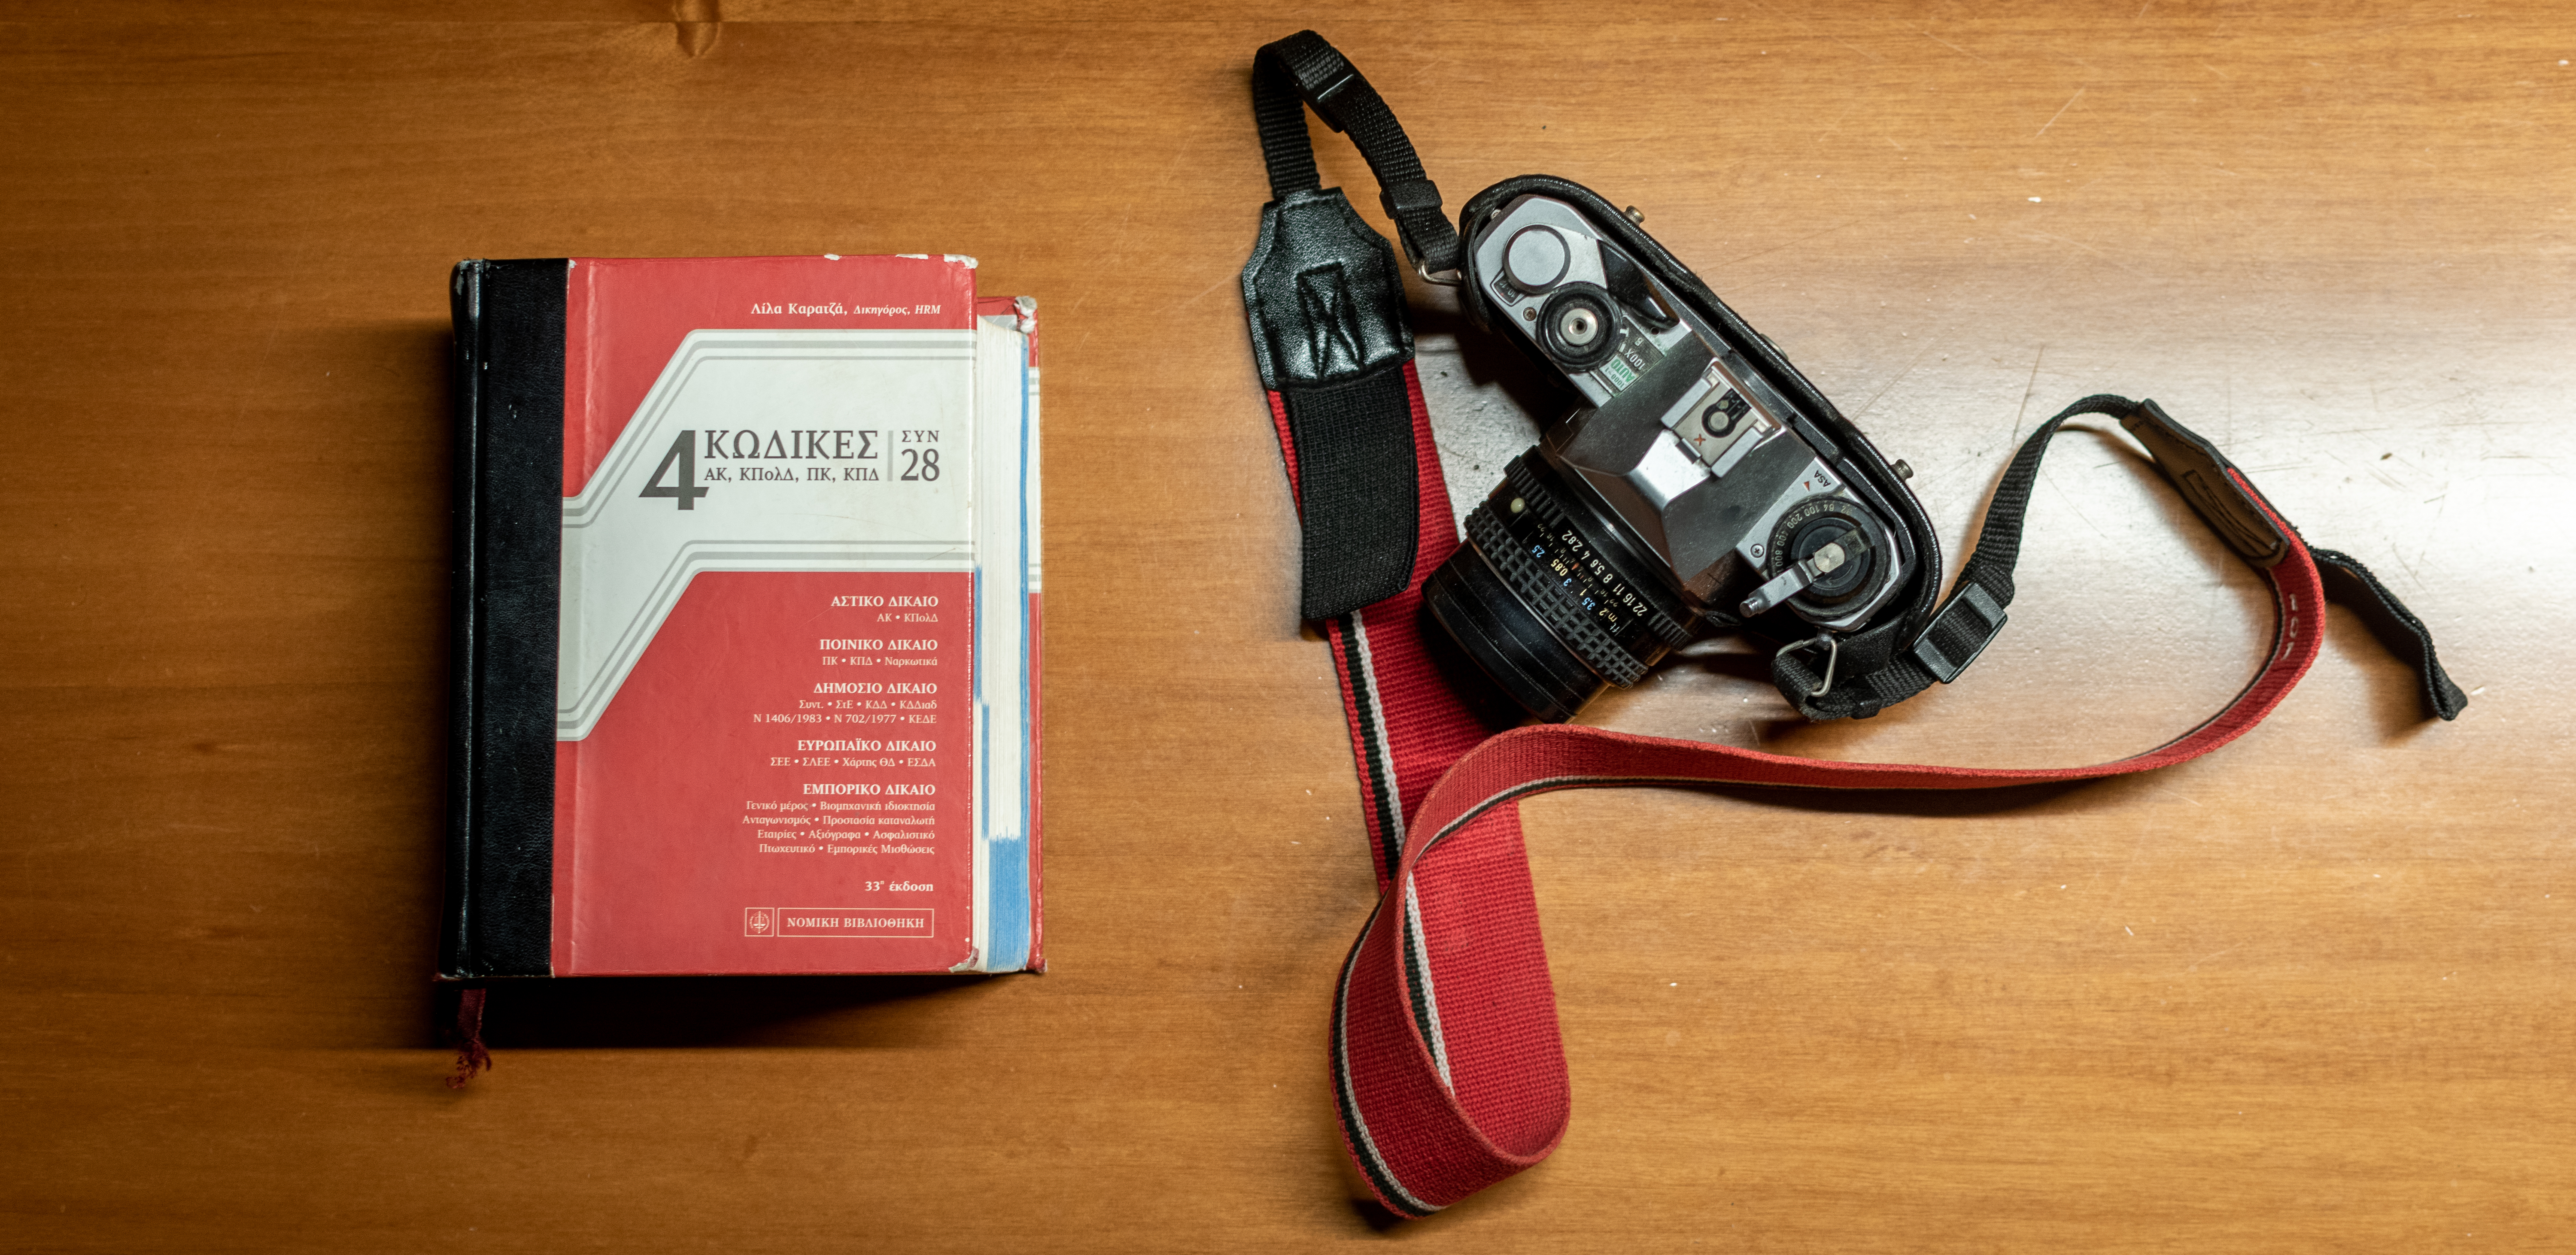 Legal and Shutter Clicks by Anastasis Kardamakis